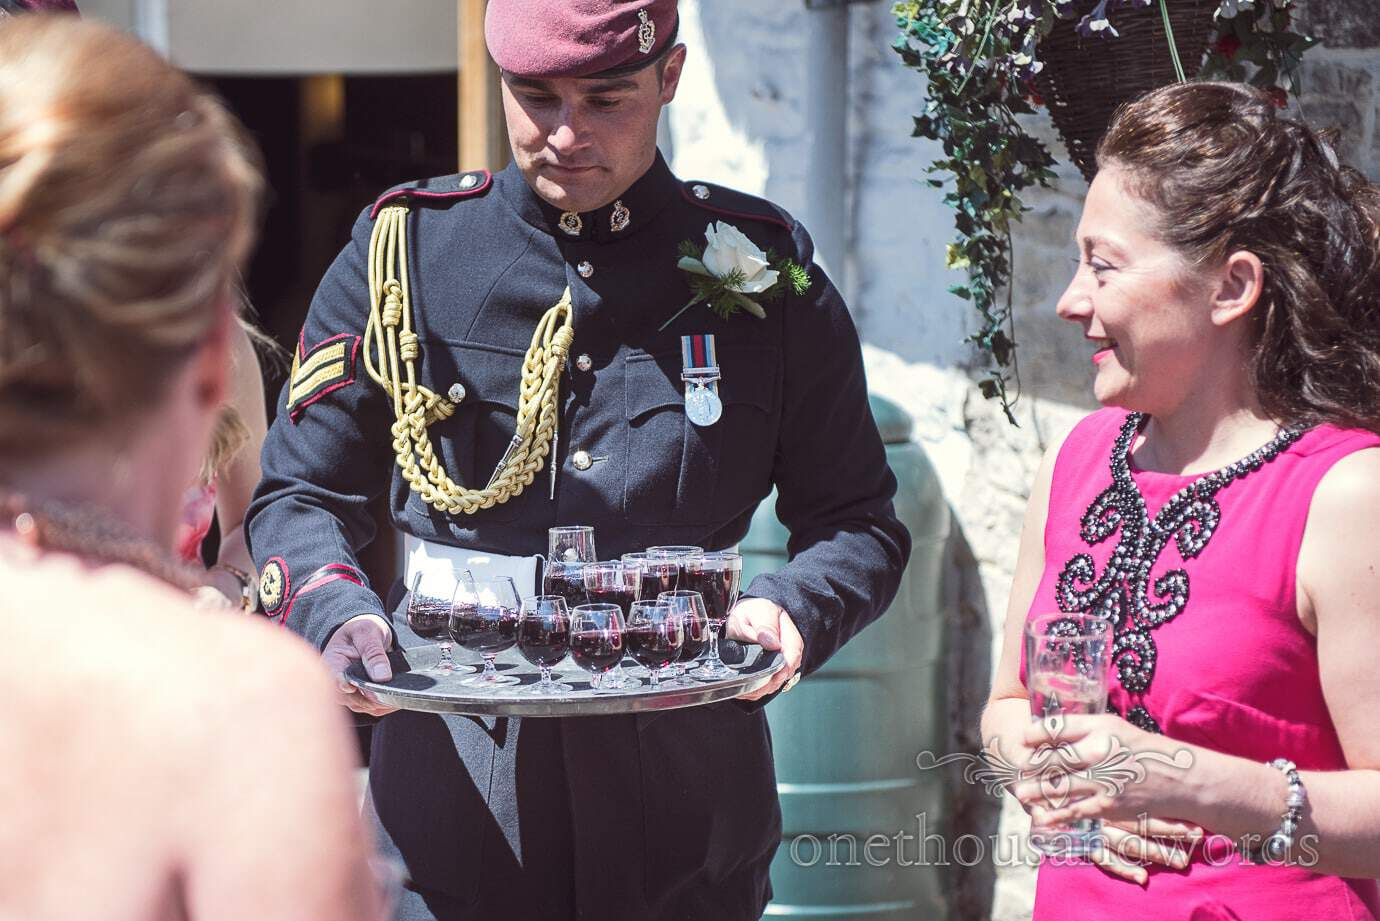 Best man in military uniform carries a tray of port on wedding morning